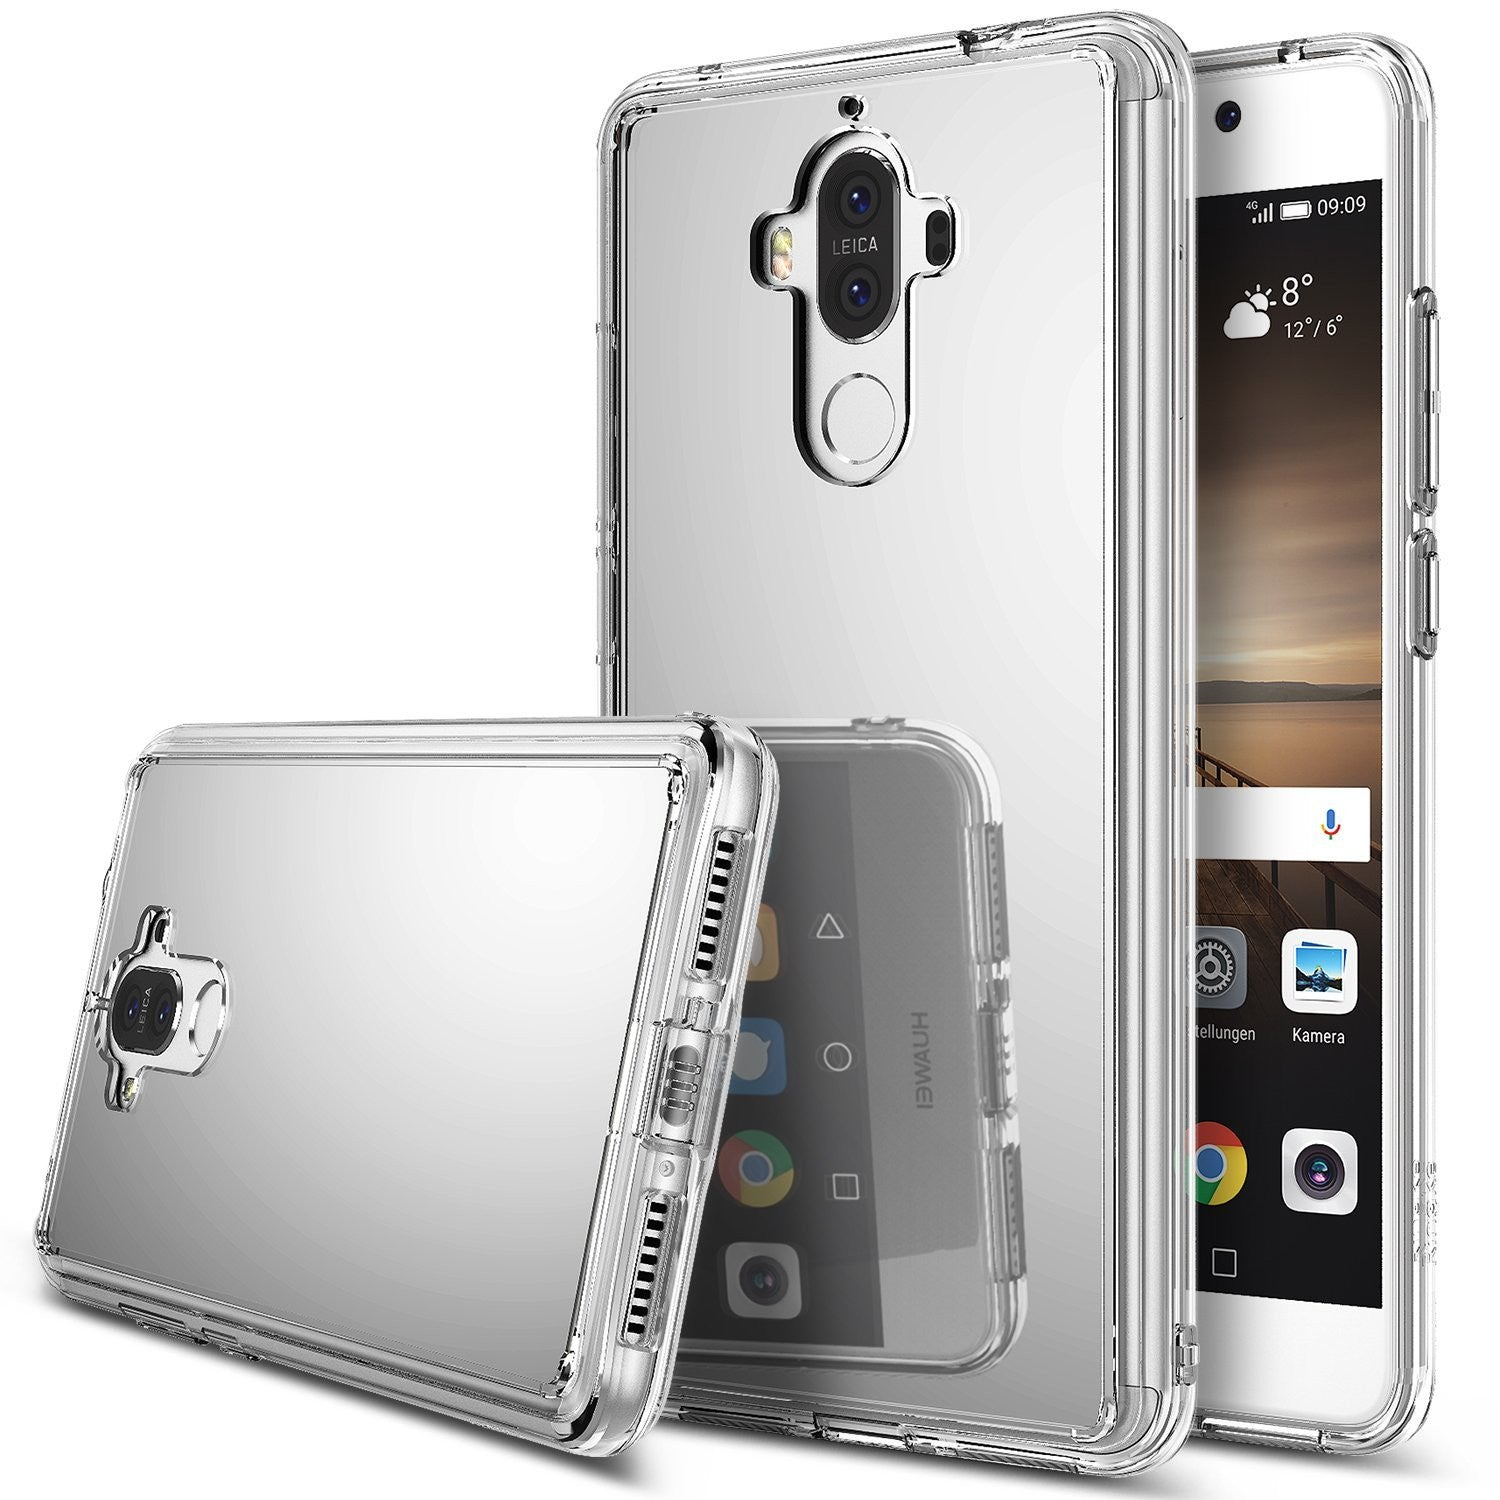 huawei mate 9 case ringke fusion case mirror case bright reflection radiant luxury mirror case silver